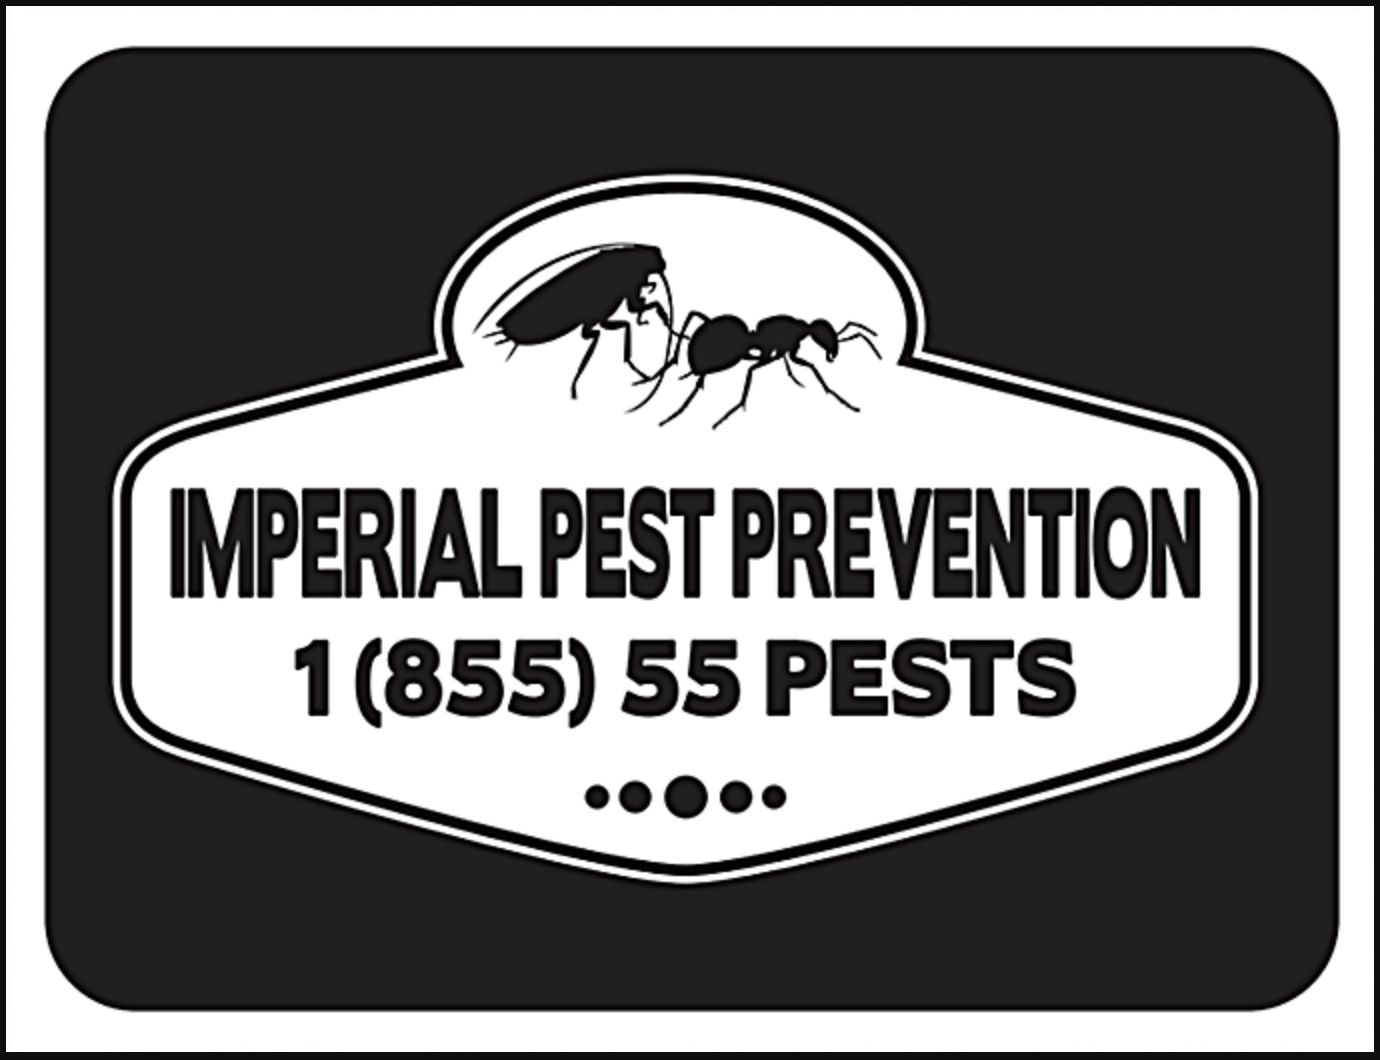 Read Imperial Pest Prevention Reviews